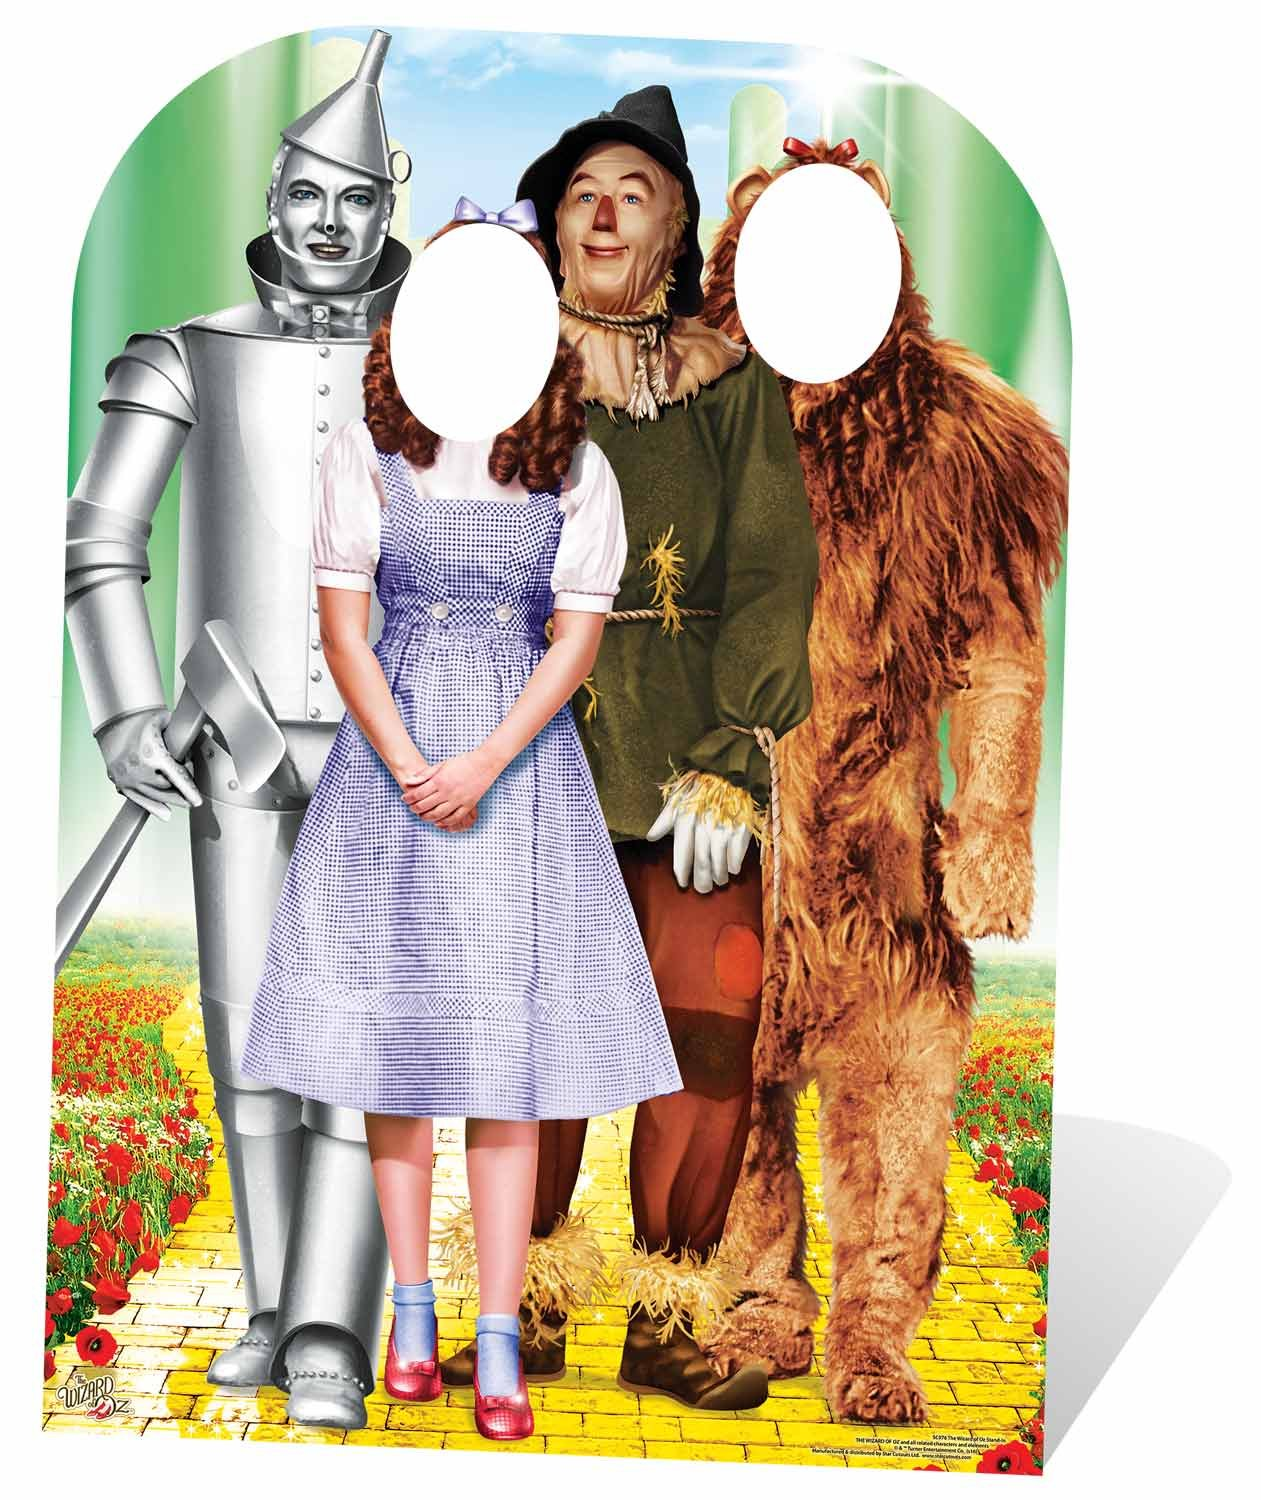 Star Cutouts Wizard of OZ Stand-in Emerald City Life Size Cardboard Cut Out with Mini Table top, Multi-Colour, 130 x 95 x 130 cm